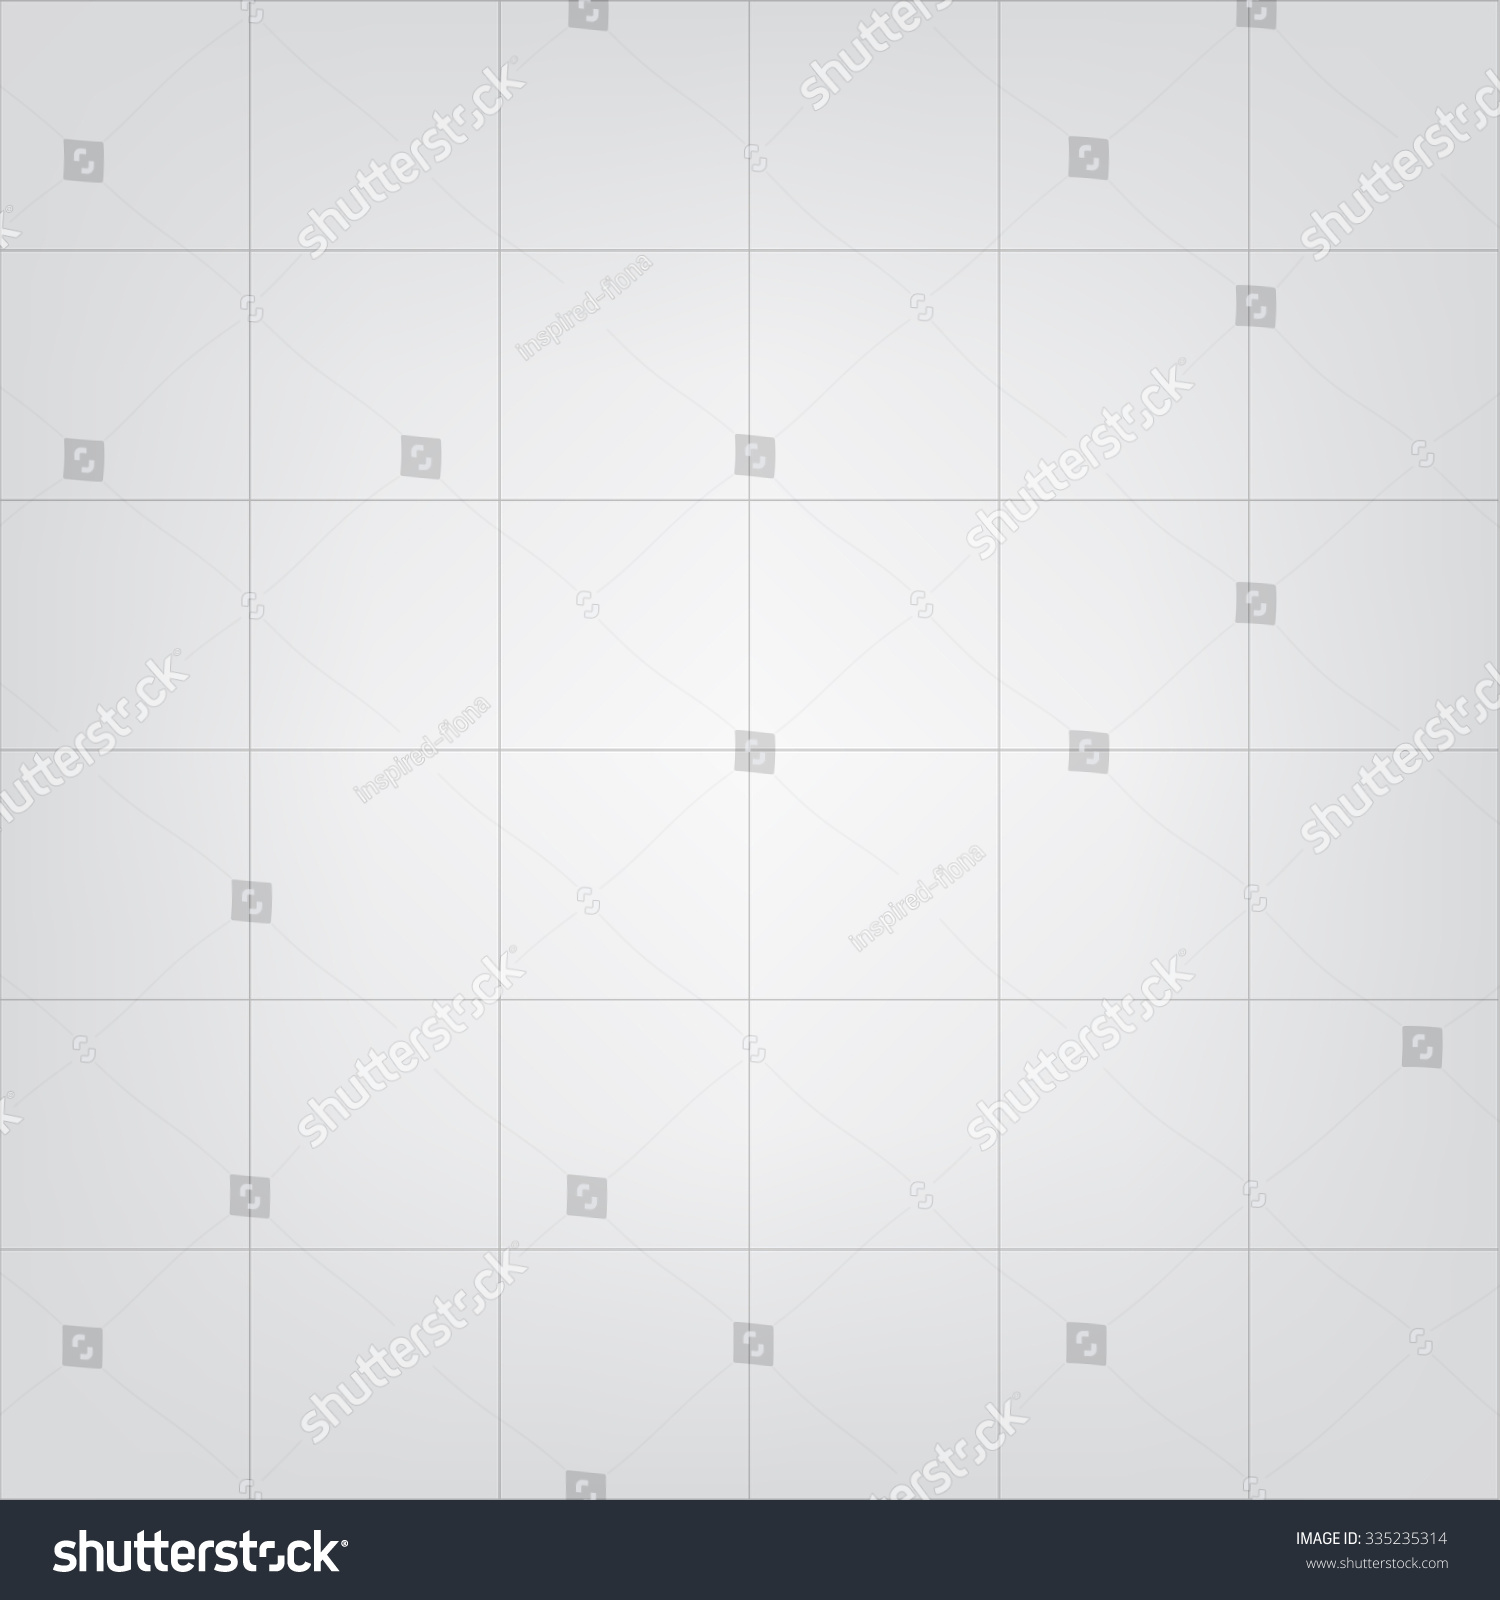 Blueprint graphing paper grid background line vectores en stock blueprint graphing paper grid background in line styles vector eps10 format malvernweather Image collections